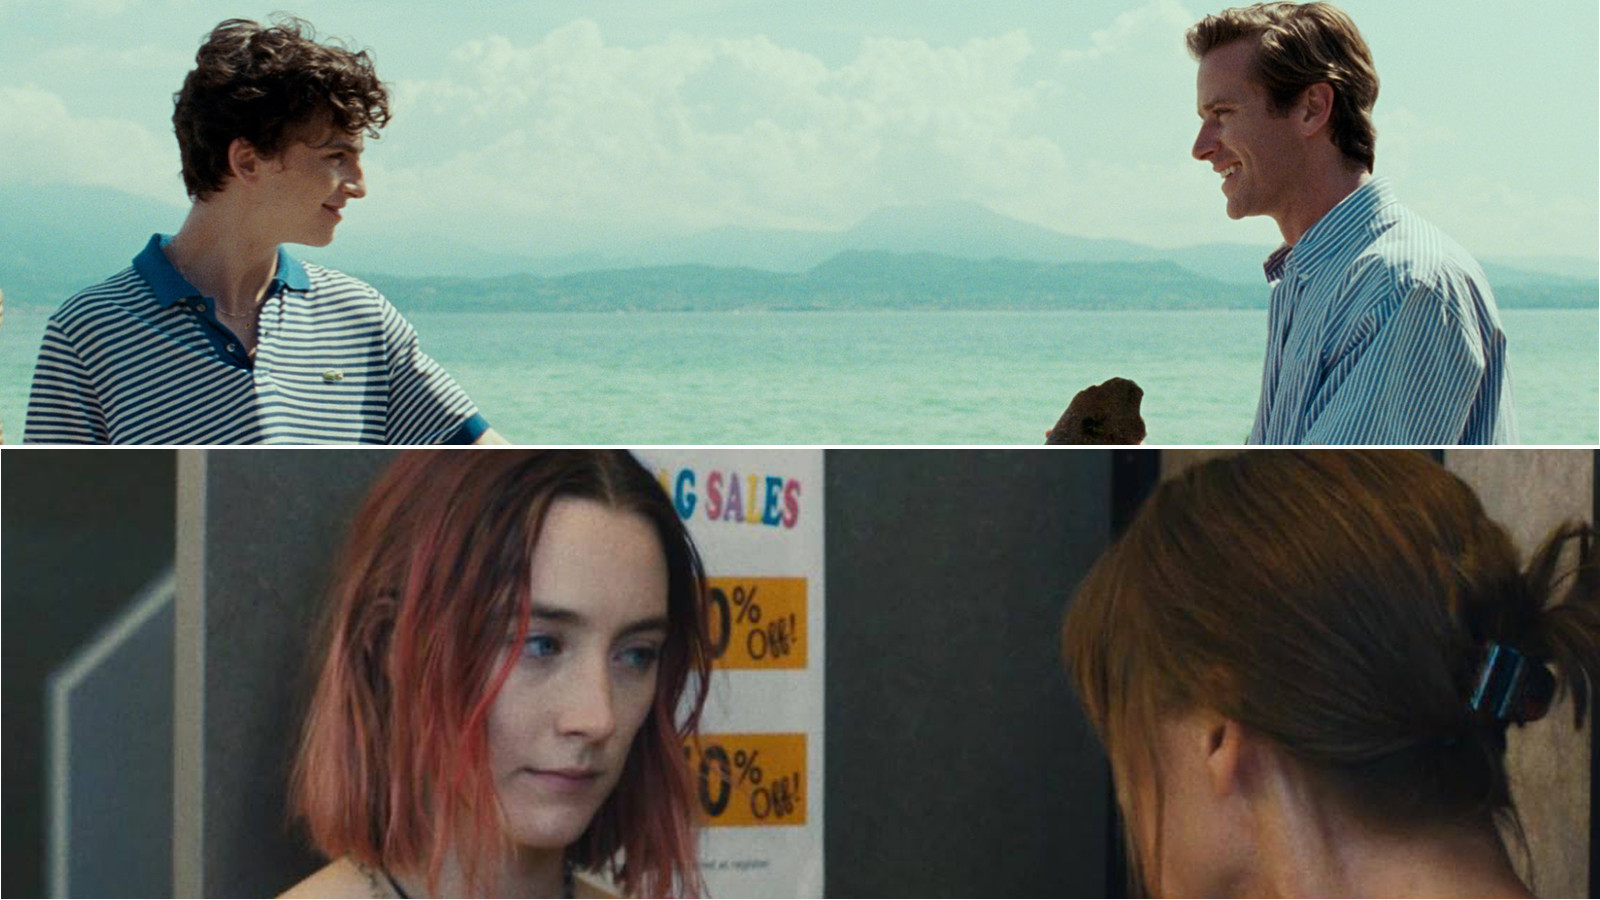 'Call Me By Your Name' and 'Lady bird'